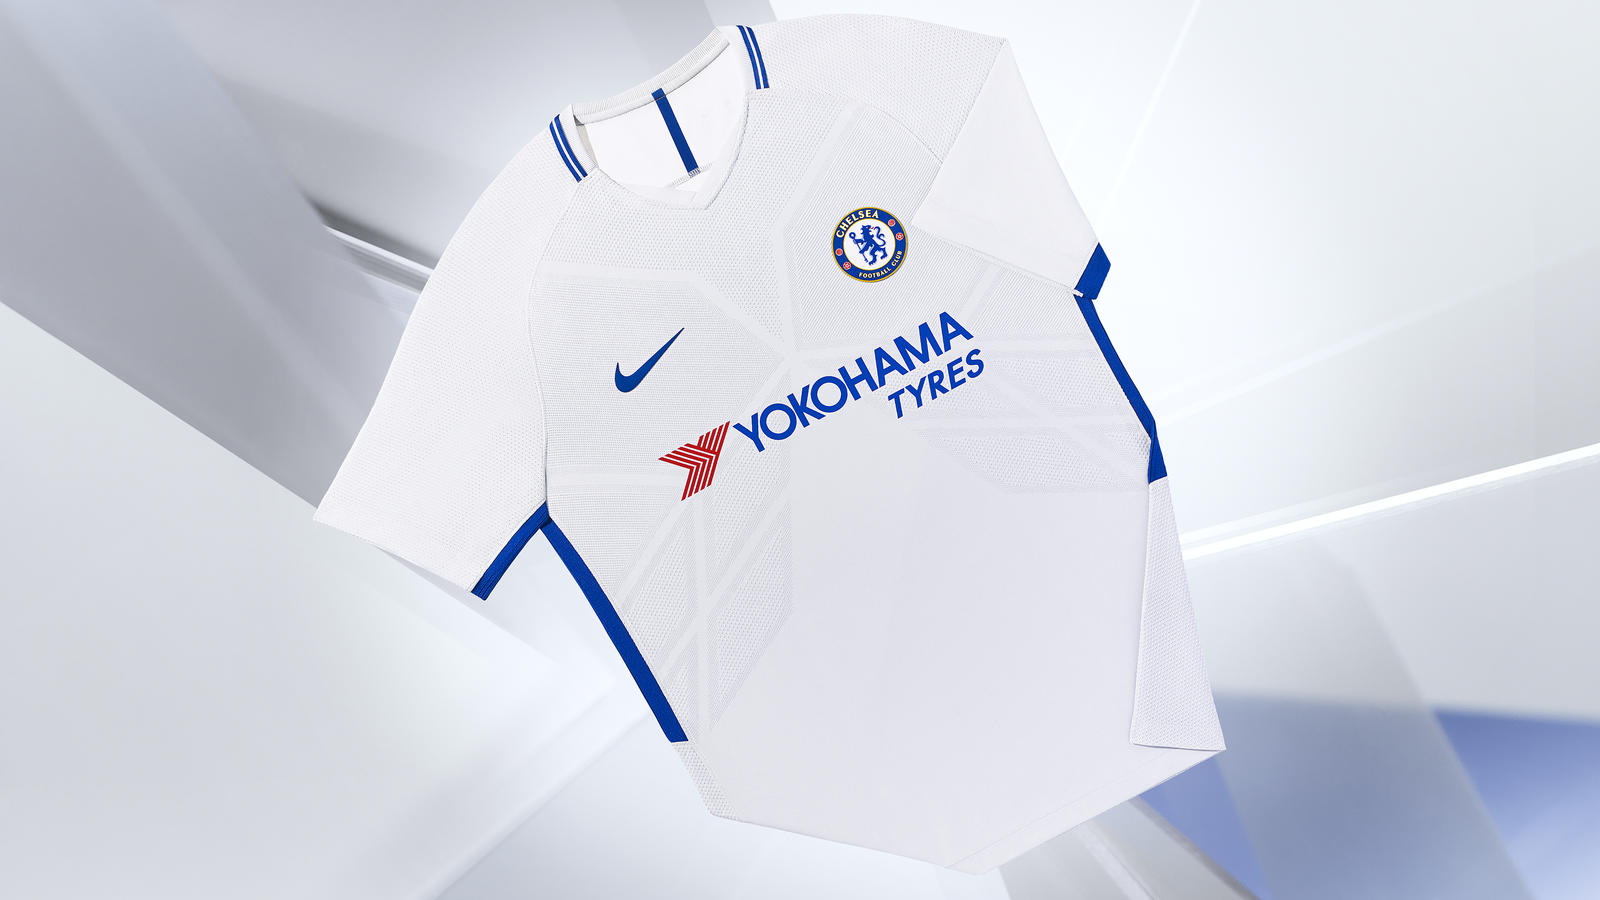 Chelsea Fc And Nike Join Forces To Unveil Home And Away Kits